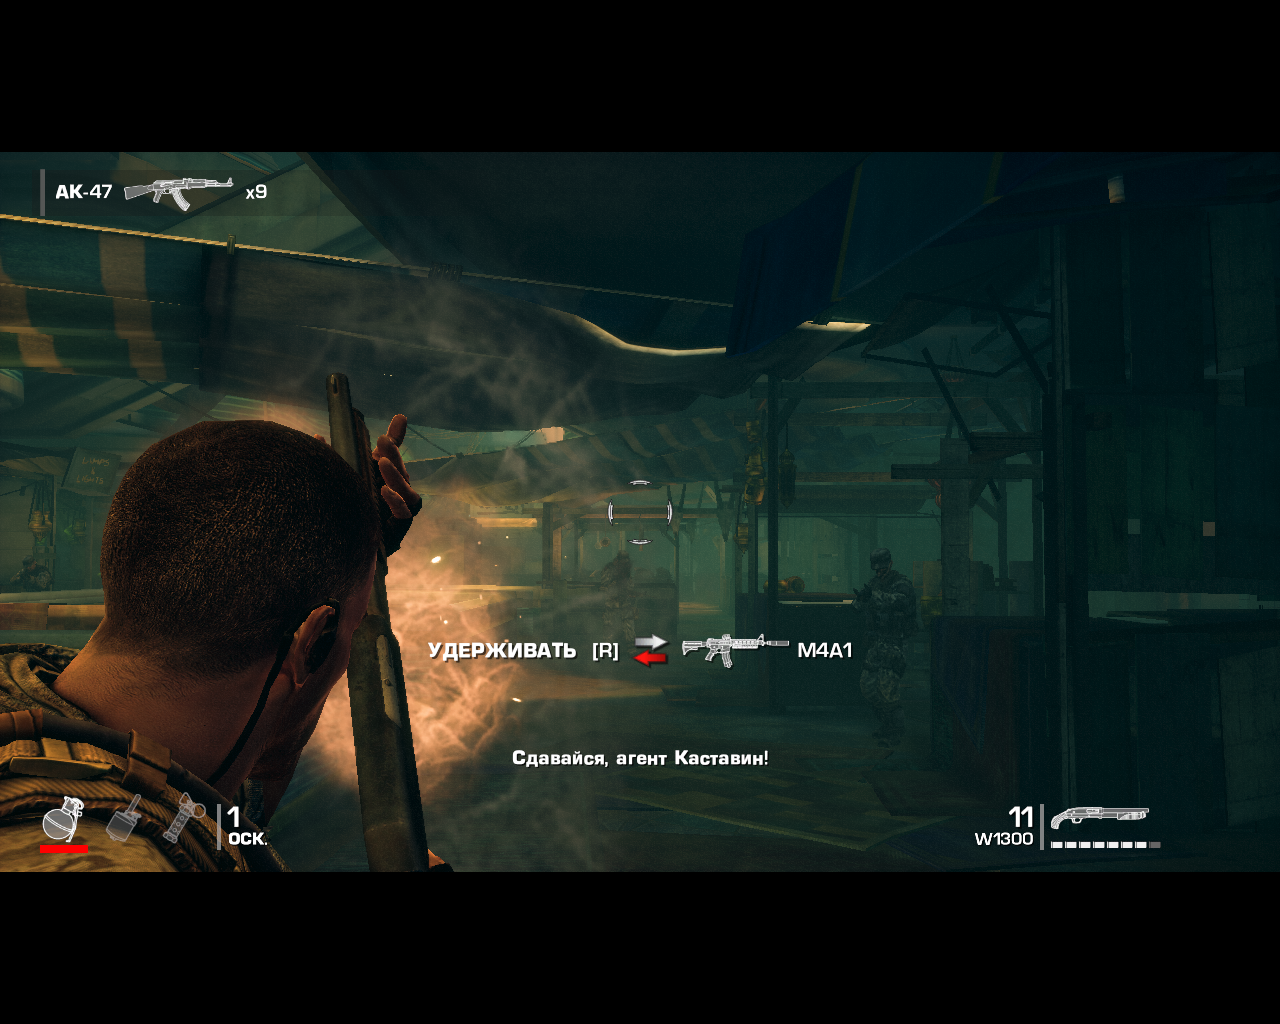 Spec Ops: The Line Windows Sawed-off shotgun action (Russian version)